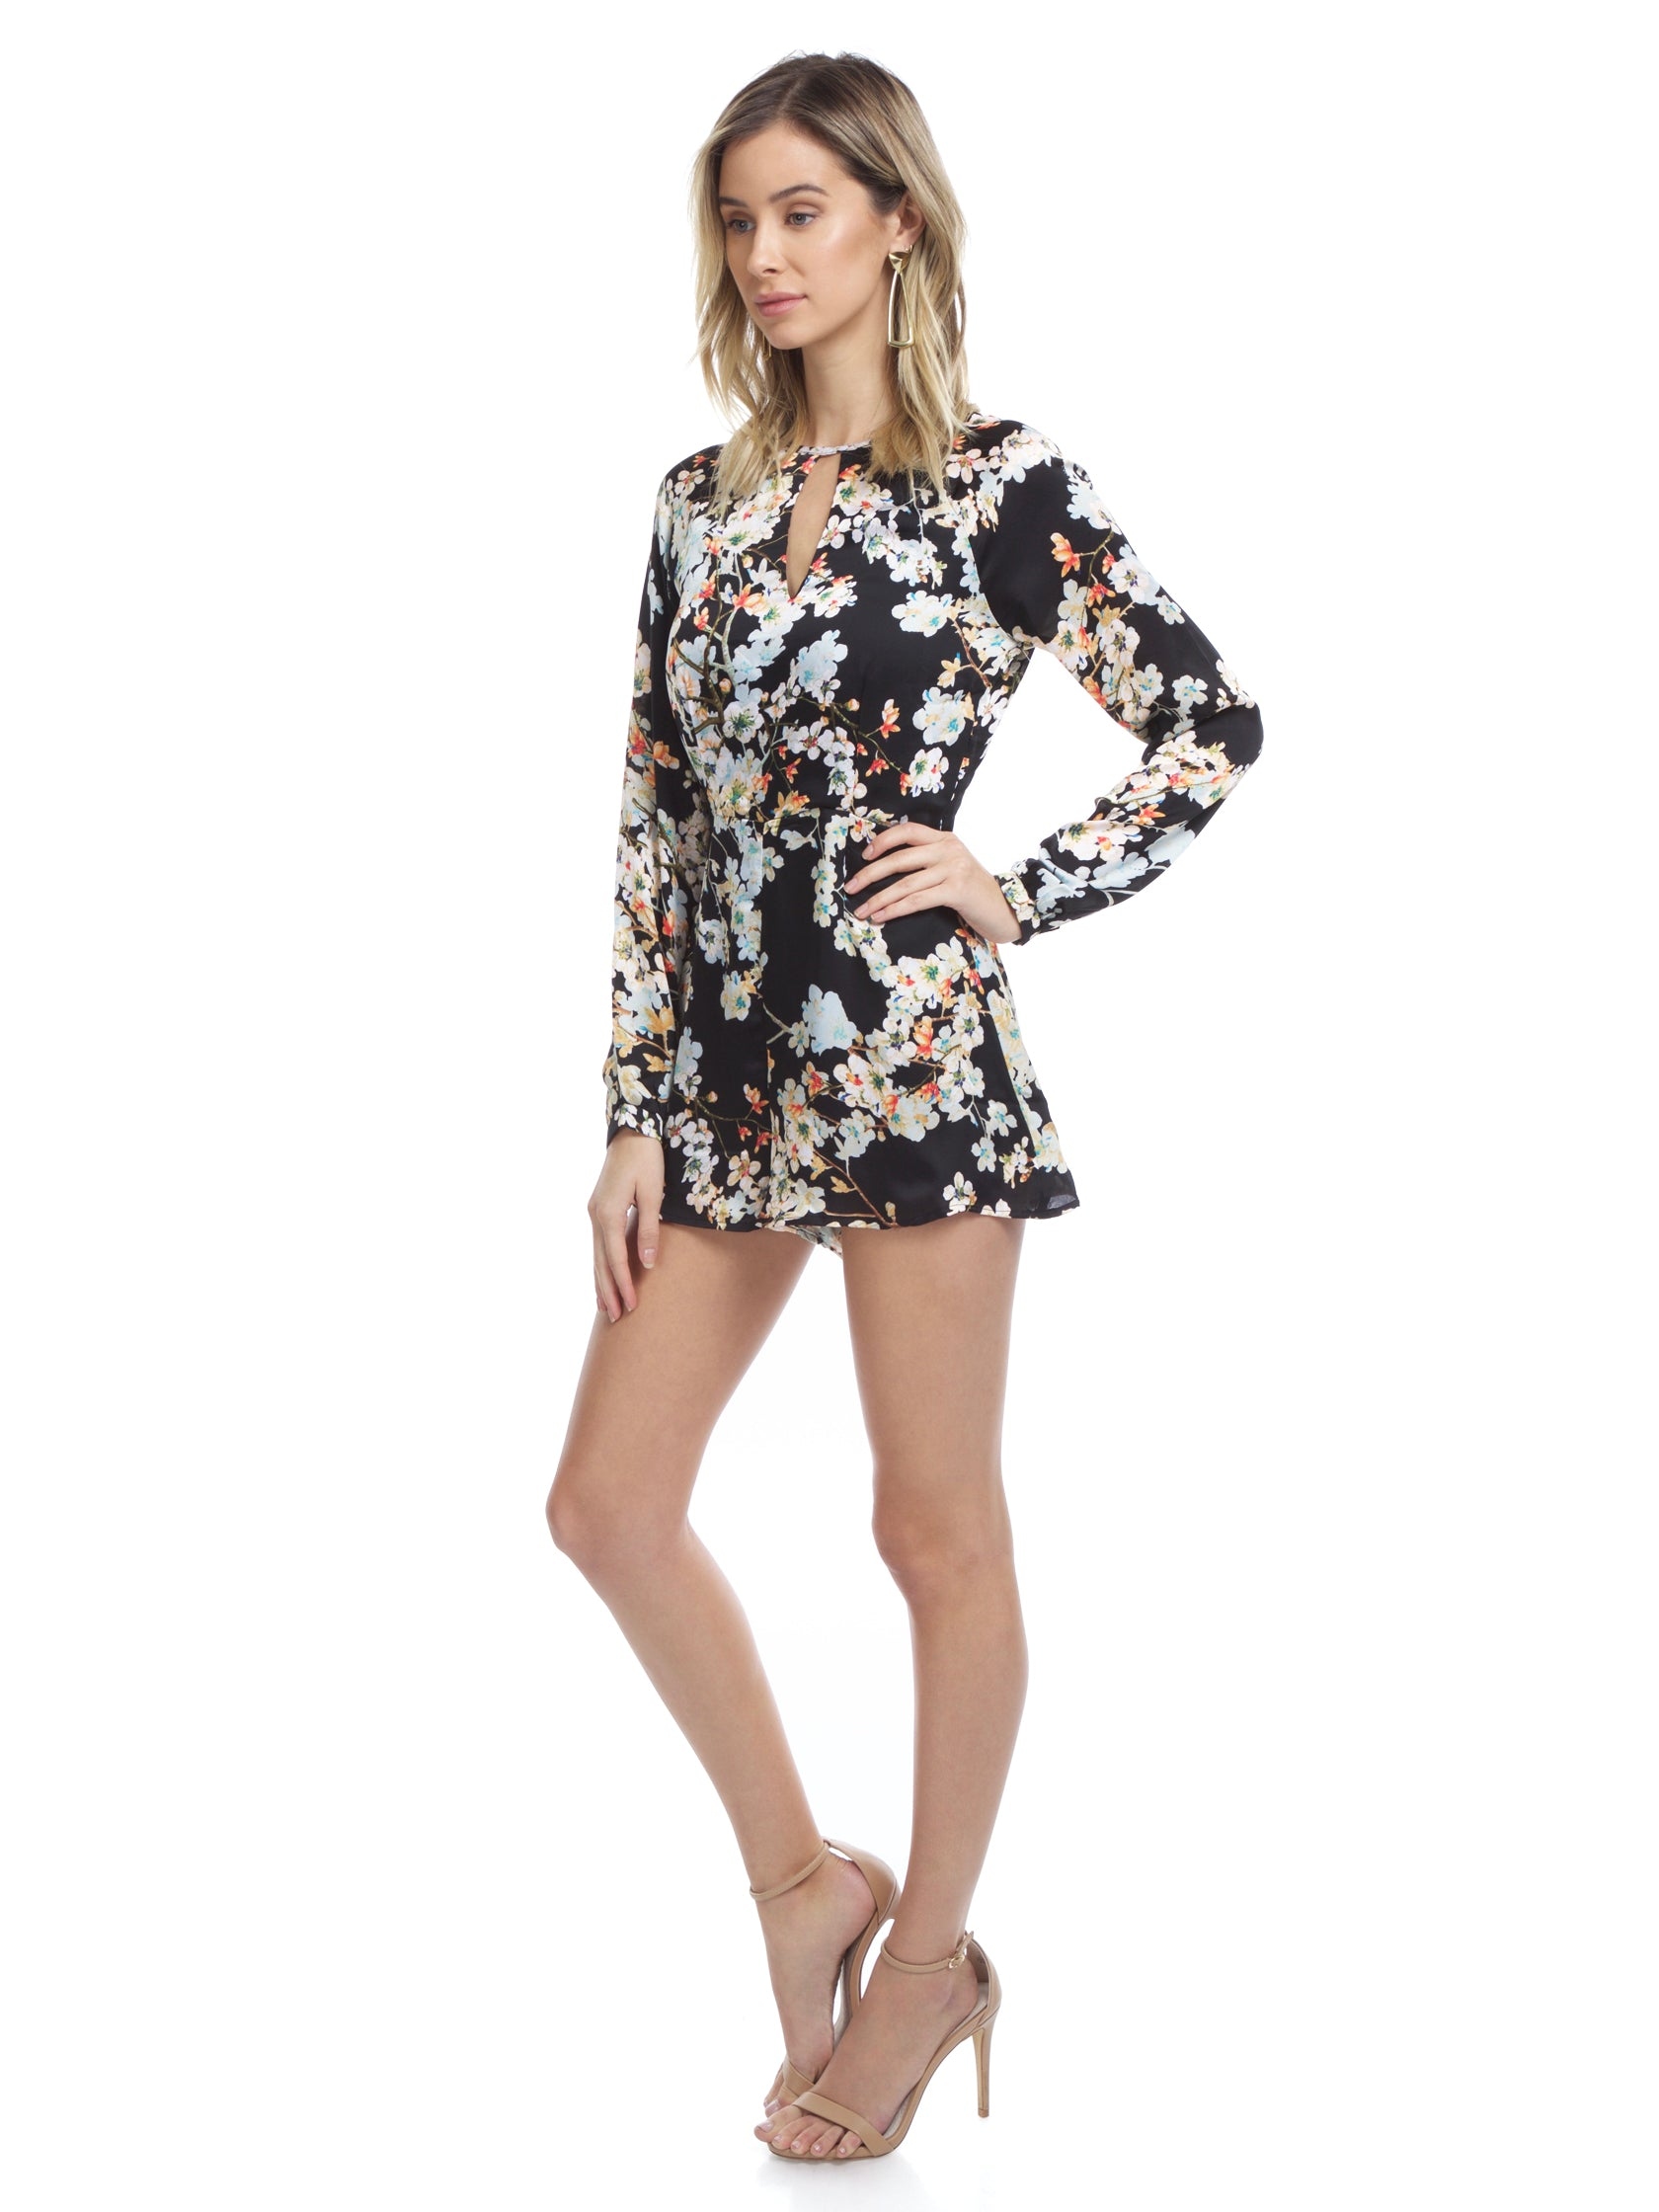 Woman wearing a romper rental from WYLDR called Double Trouble Playsuit